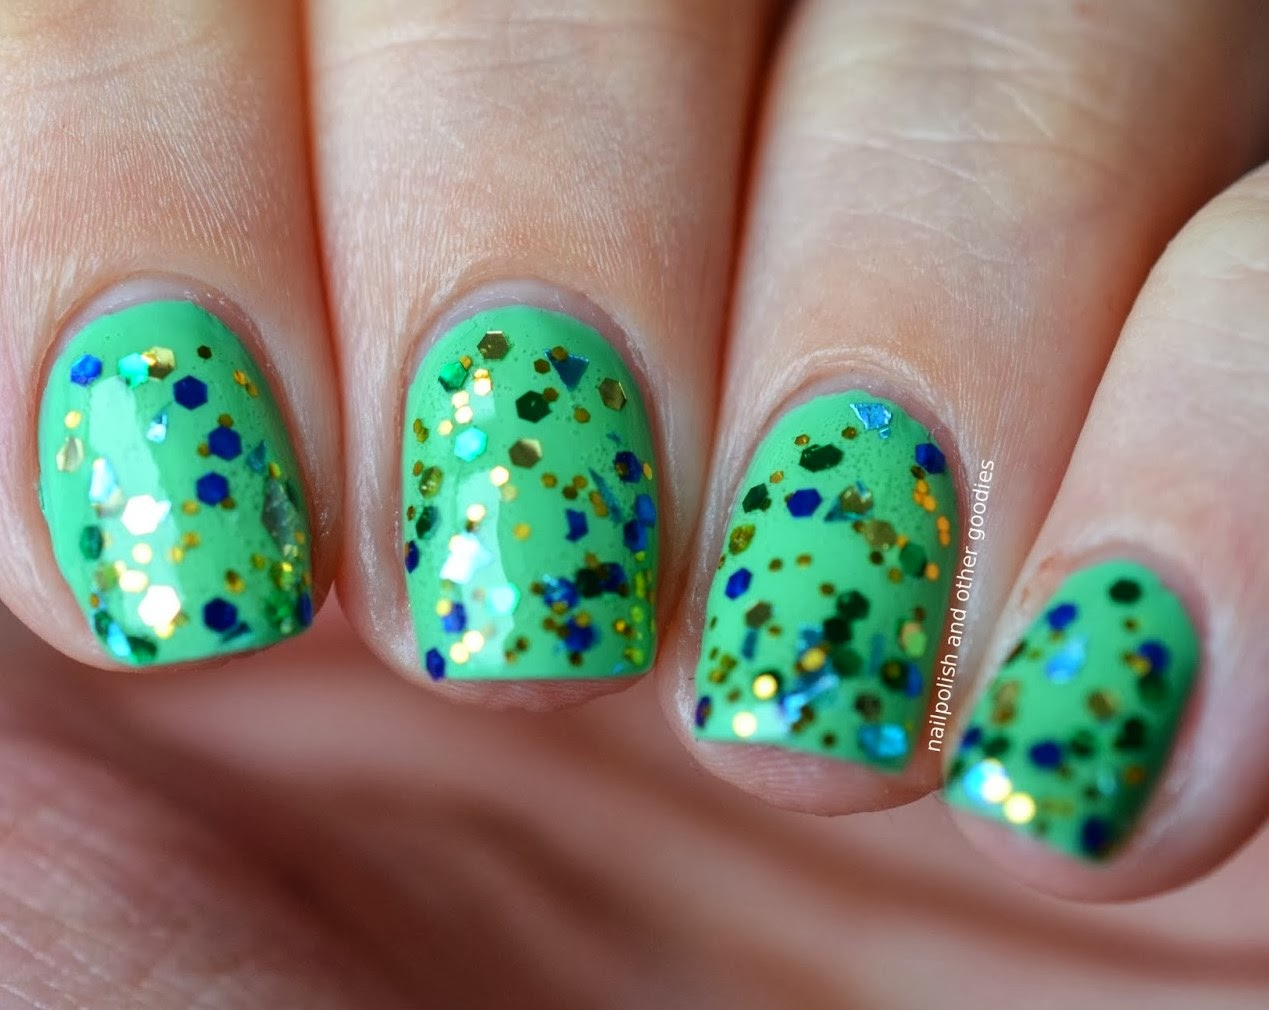 http://nailpolish-and-other-goodies.blogspot.de/2014/01/nails-of-day-topper-time-dancing-queen.html